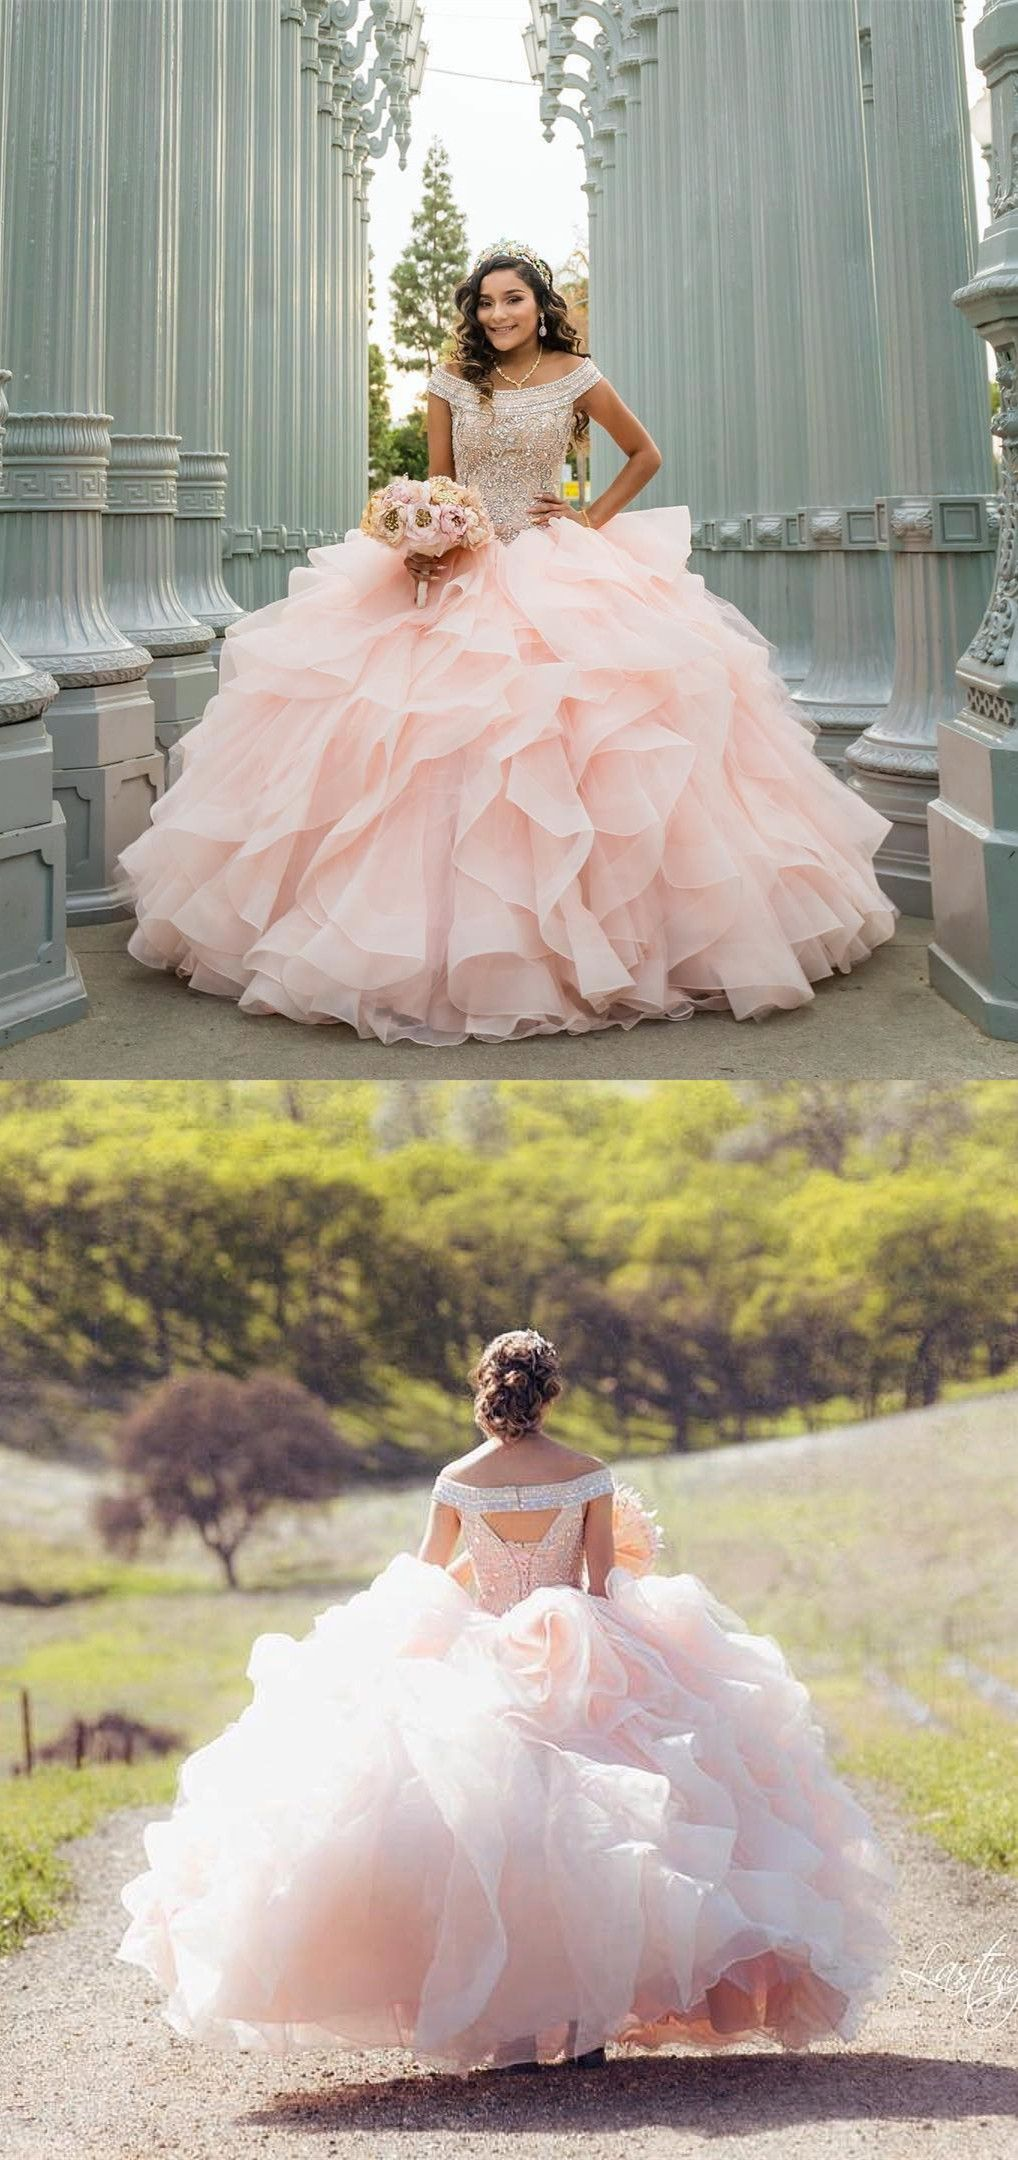 Gorgeous Pink Quinceanera Dresses Sweet 16 Prom Party Dresses With Open Back Quinceanera Dresses Pink Quinceanera Dresses Gold Quinceanera Dresses Blush [ 2160 x 1018 Pixel ]